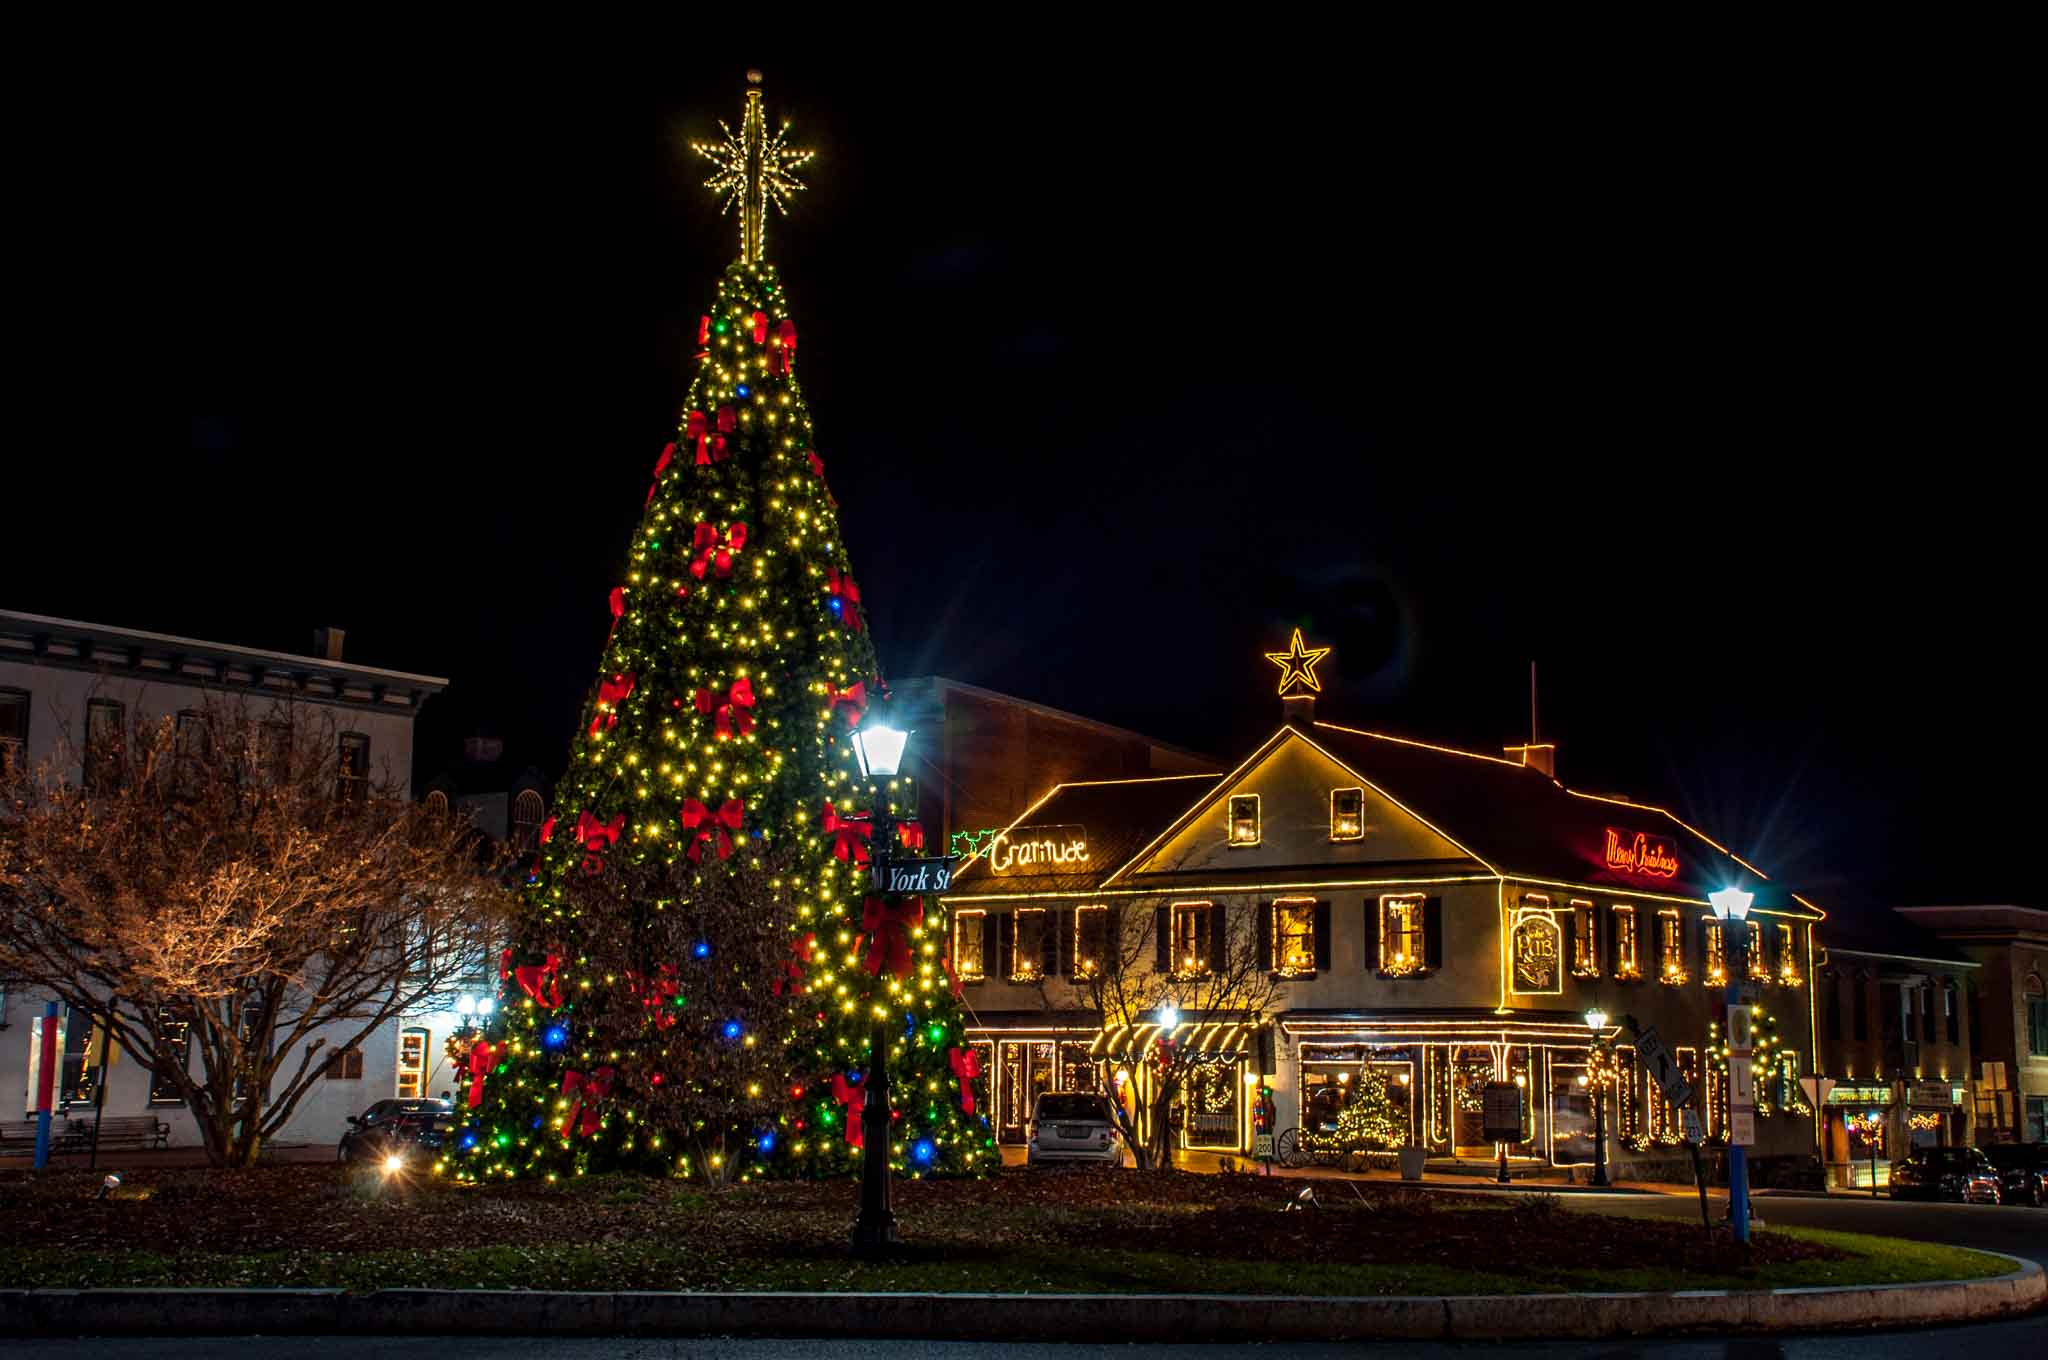 Lincoln Square in Gettysburg, PA at Christmas